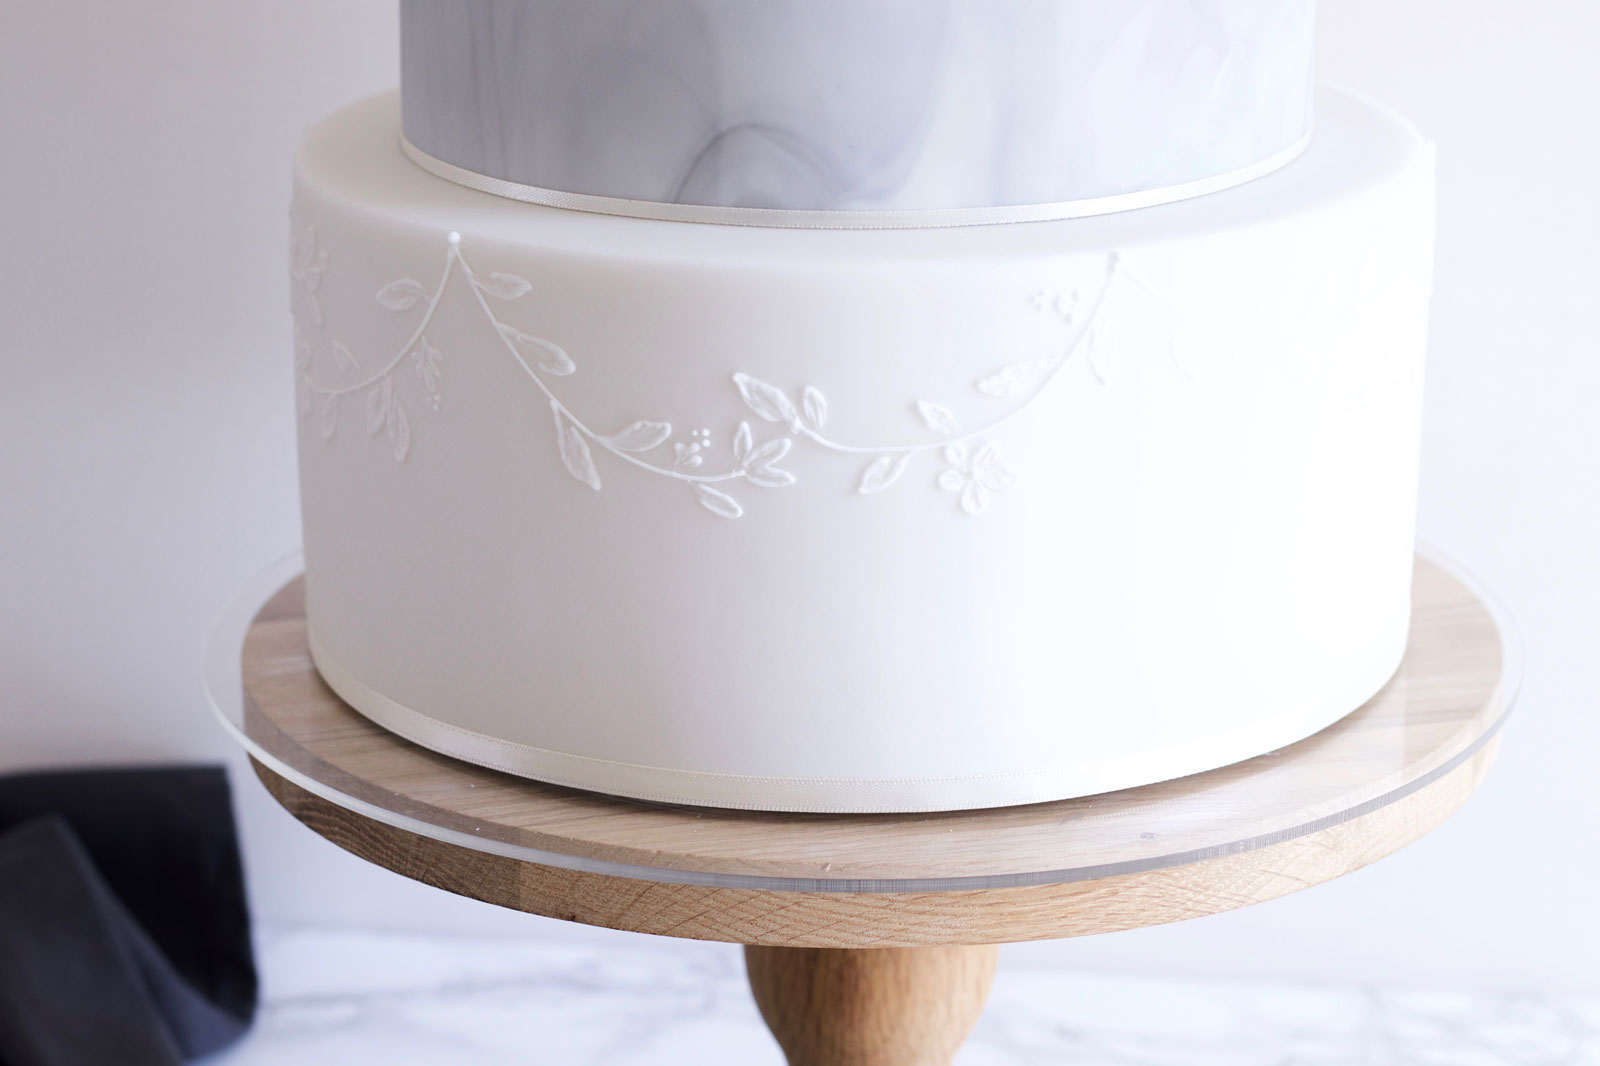 Wedding Cake Designer, Wedding Cake, Weddings, Wedding Cake Maker